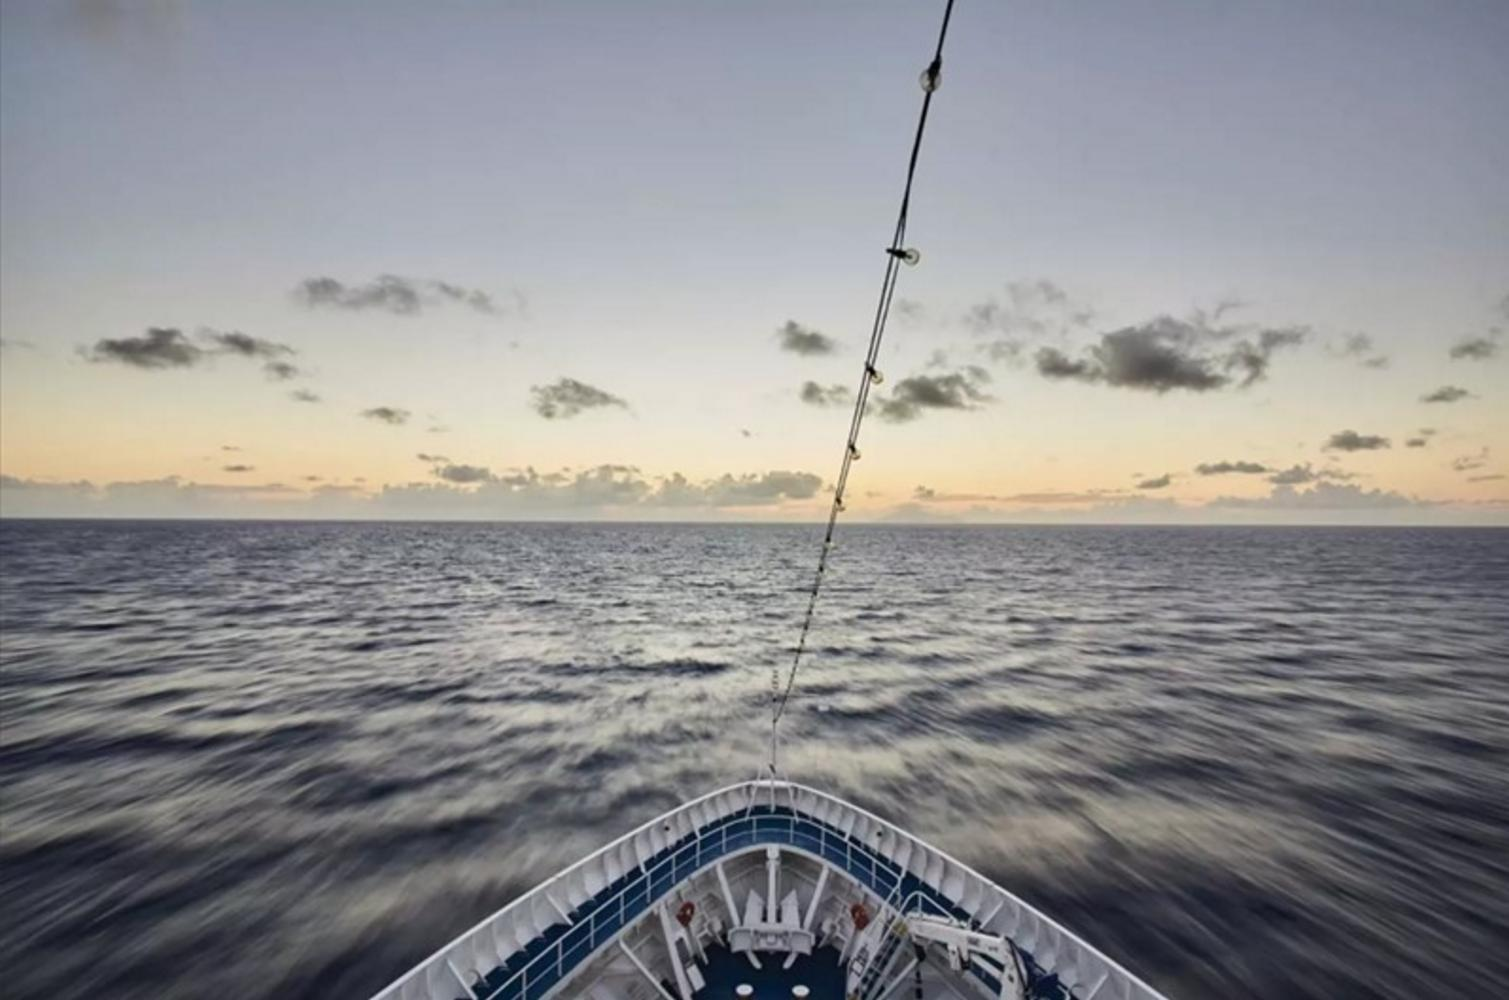 Onboard sailing